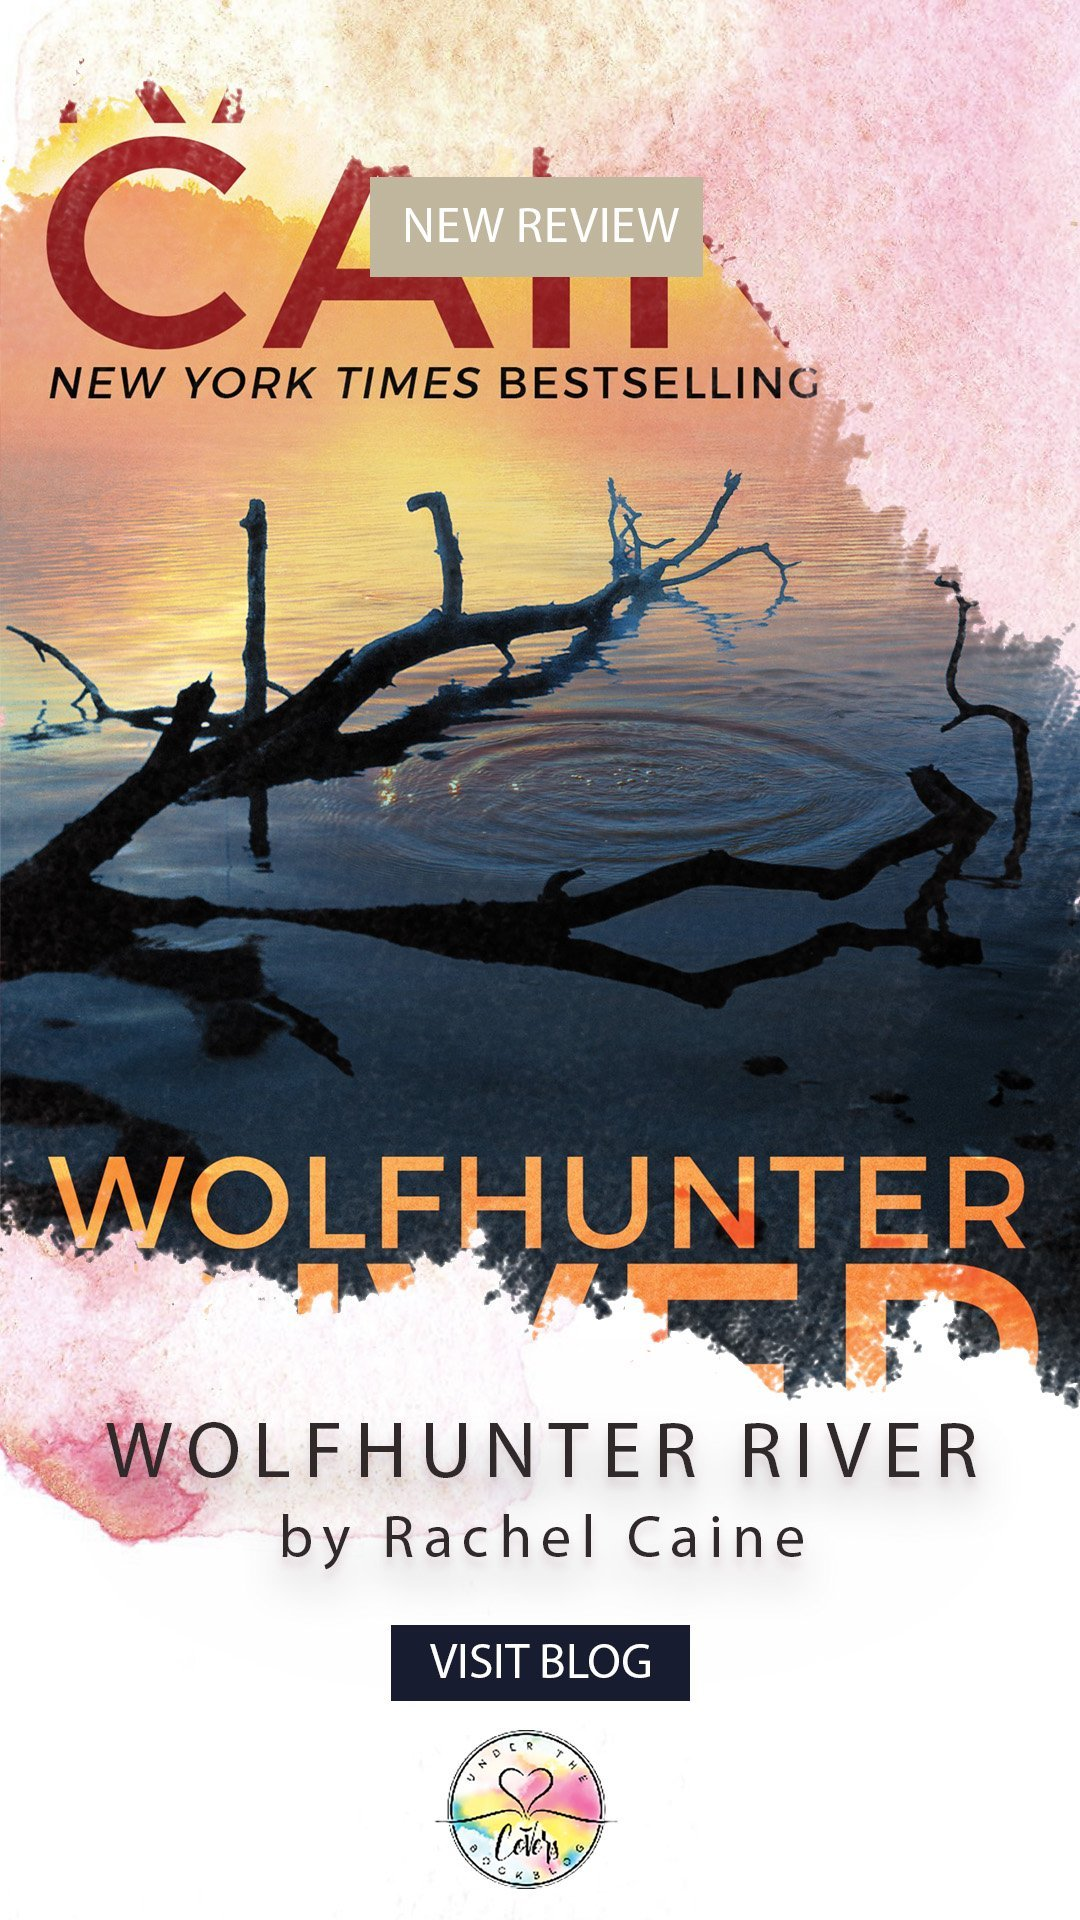 Review: Wolfhunter River by Rachel Caine